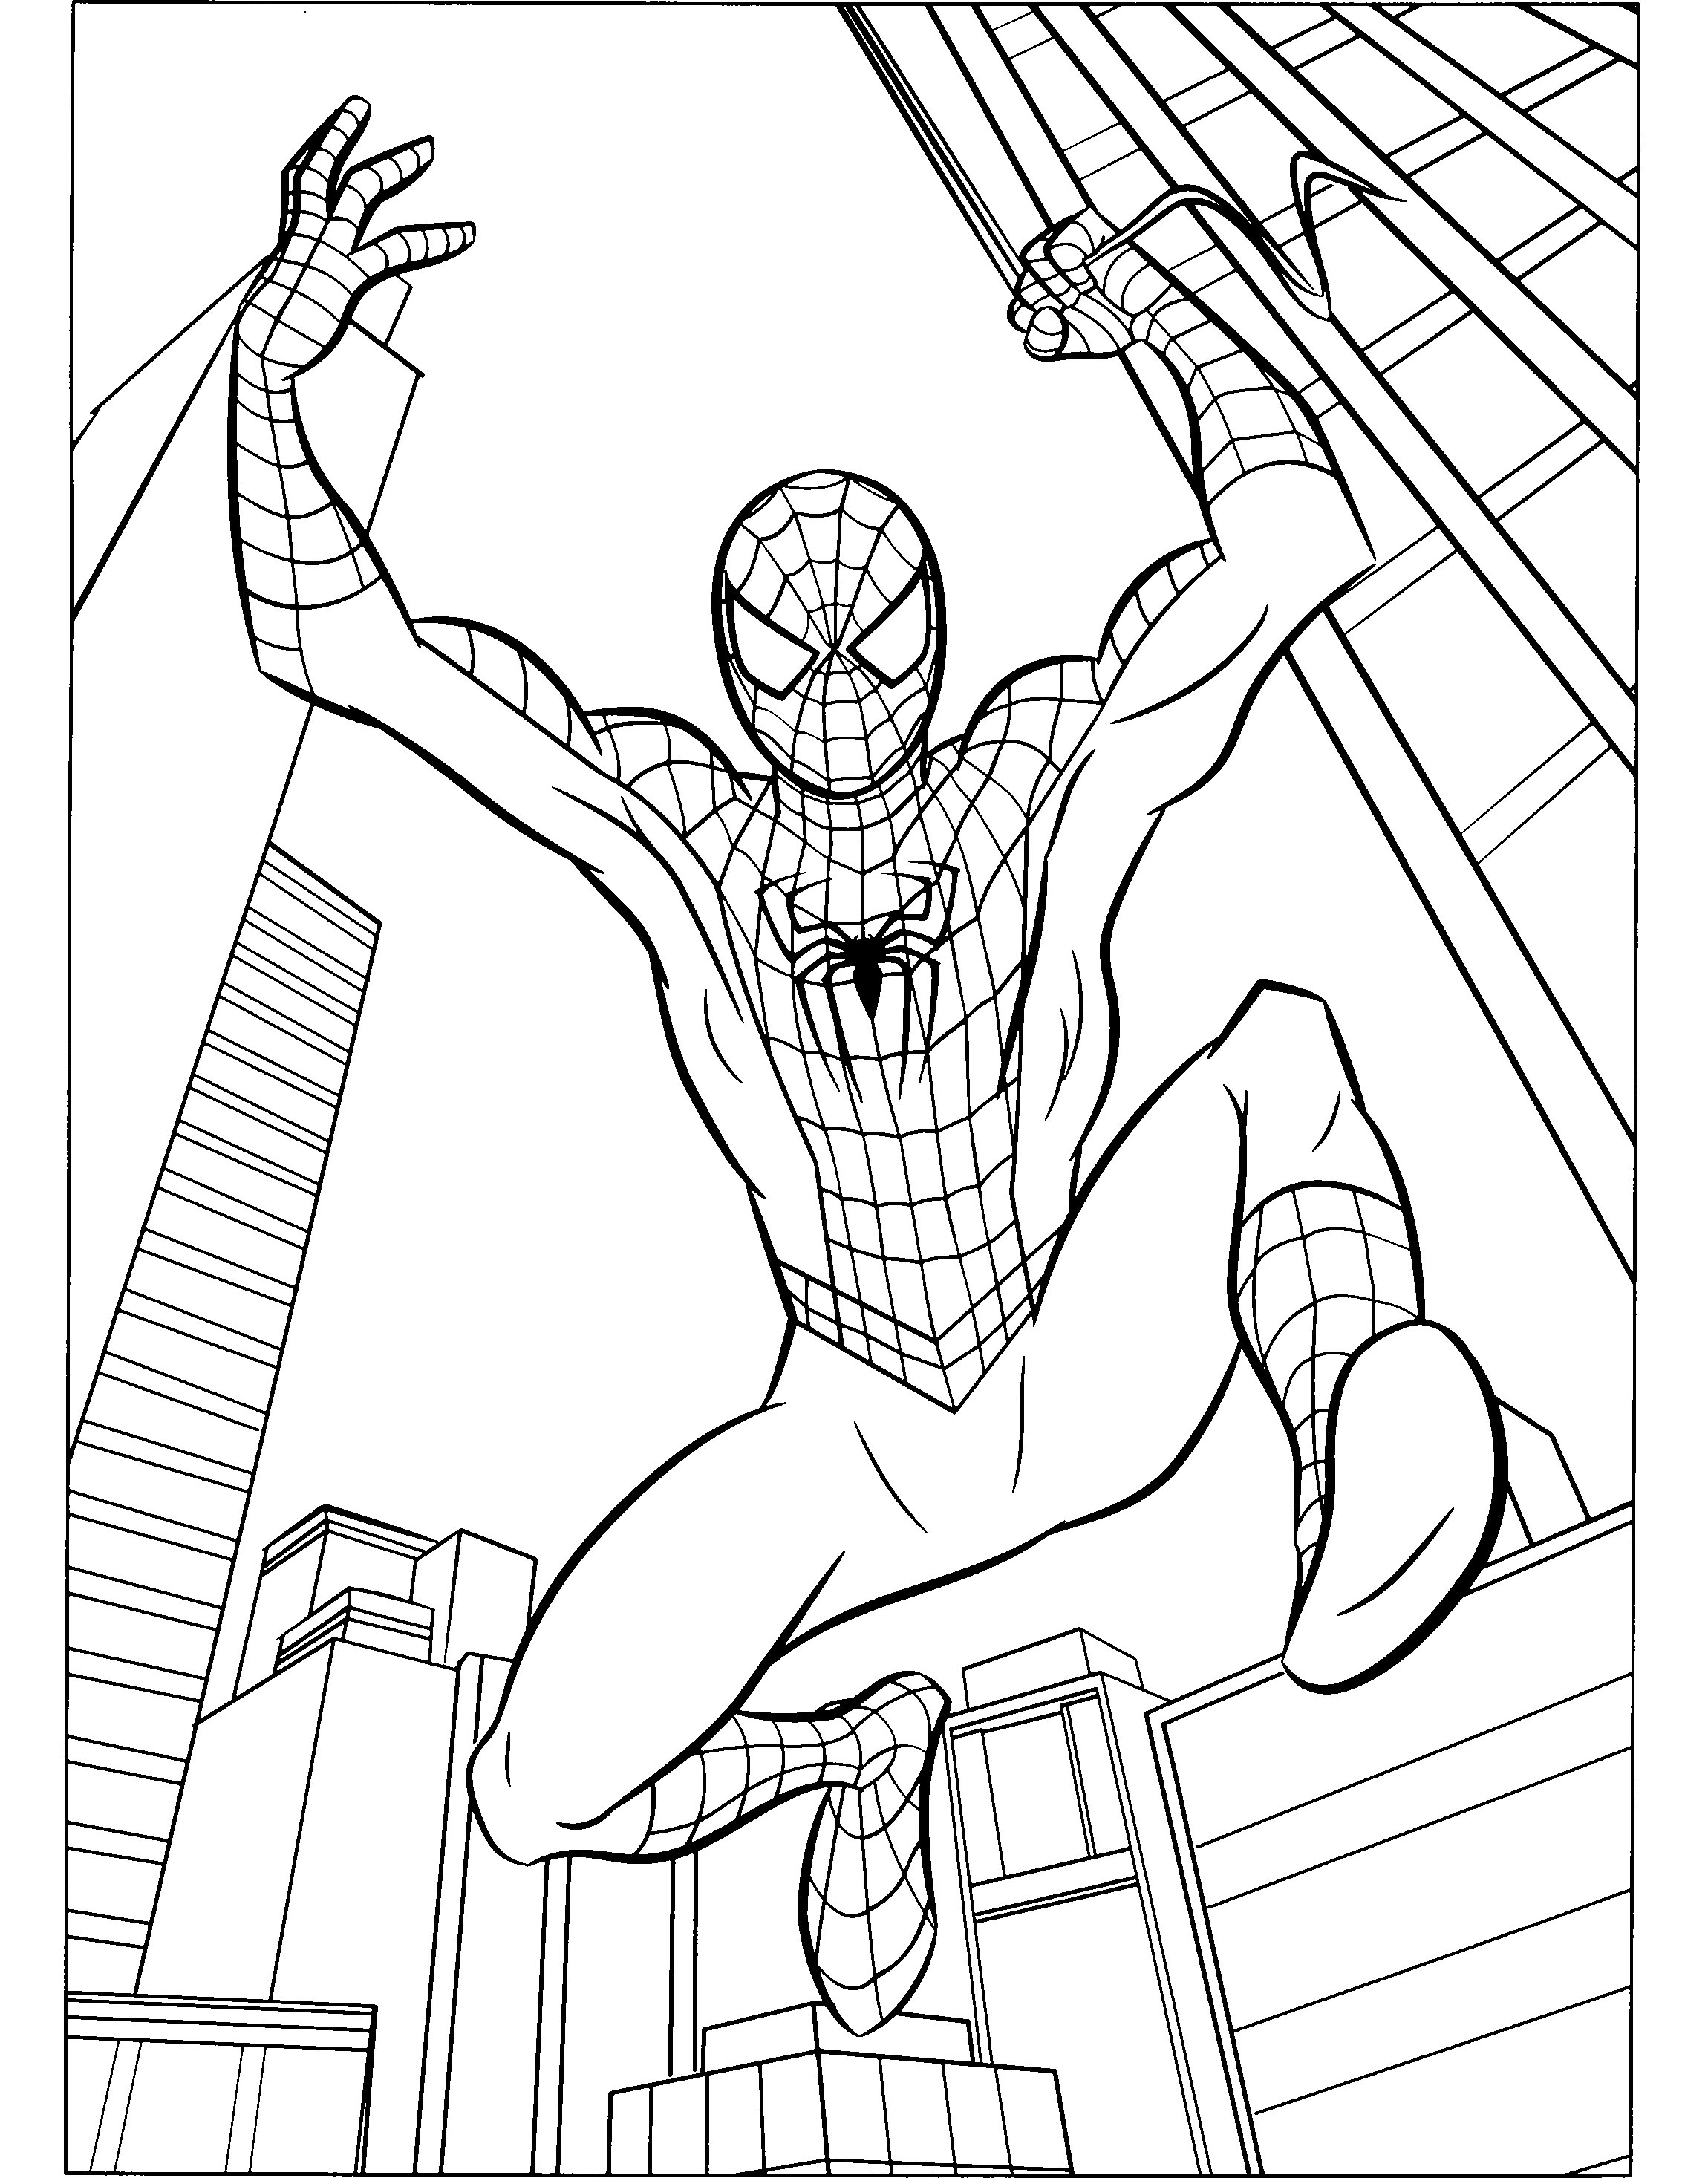 spiderman happy birthday coloring pages ; horseland-coloring-pages-11-ac-strange-spiderman-coloring-pages-1558